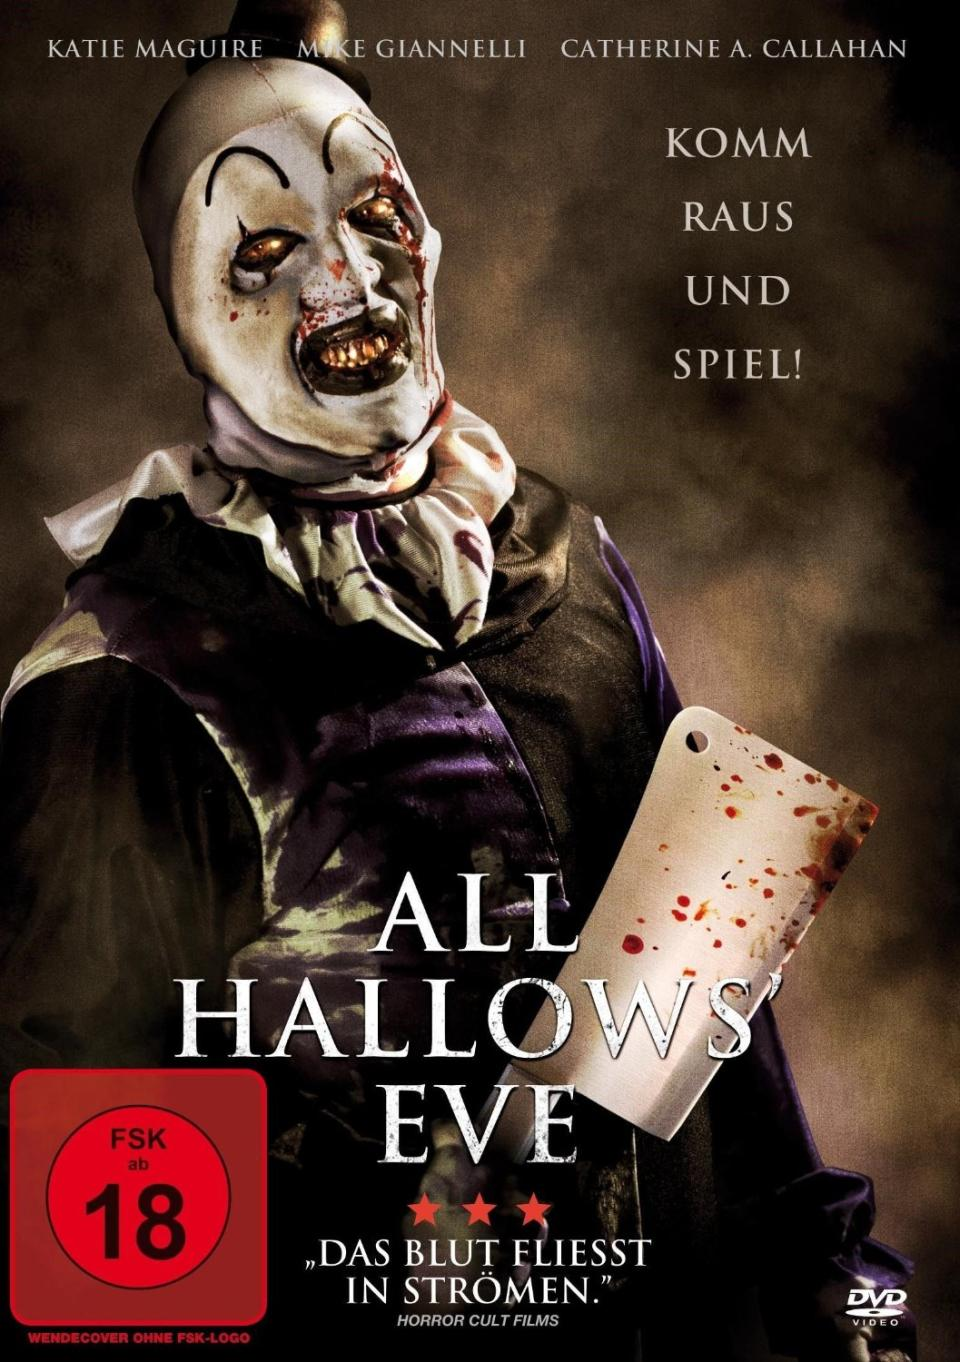 All hallows reviews